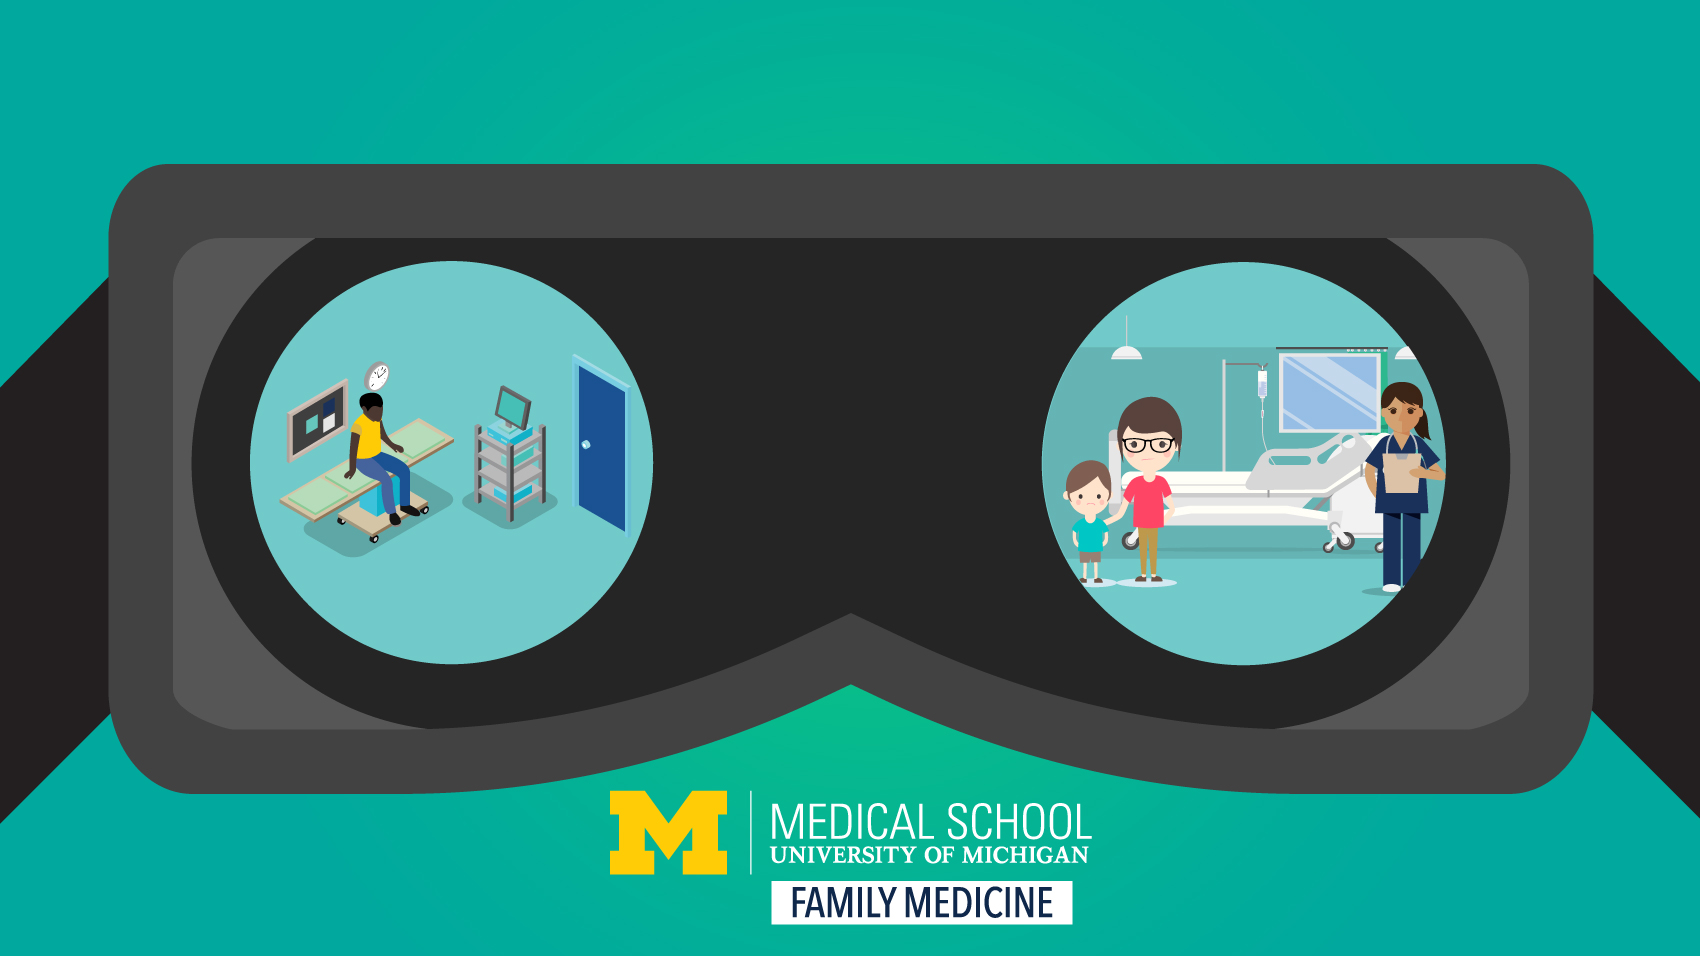 image of virtual reality goggles viewing medical scenes